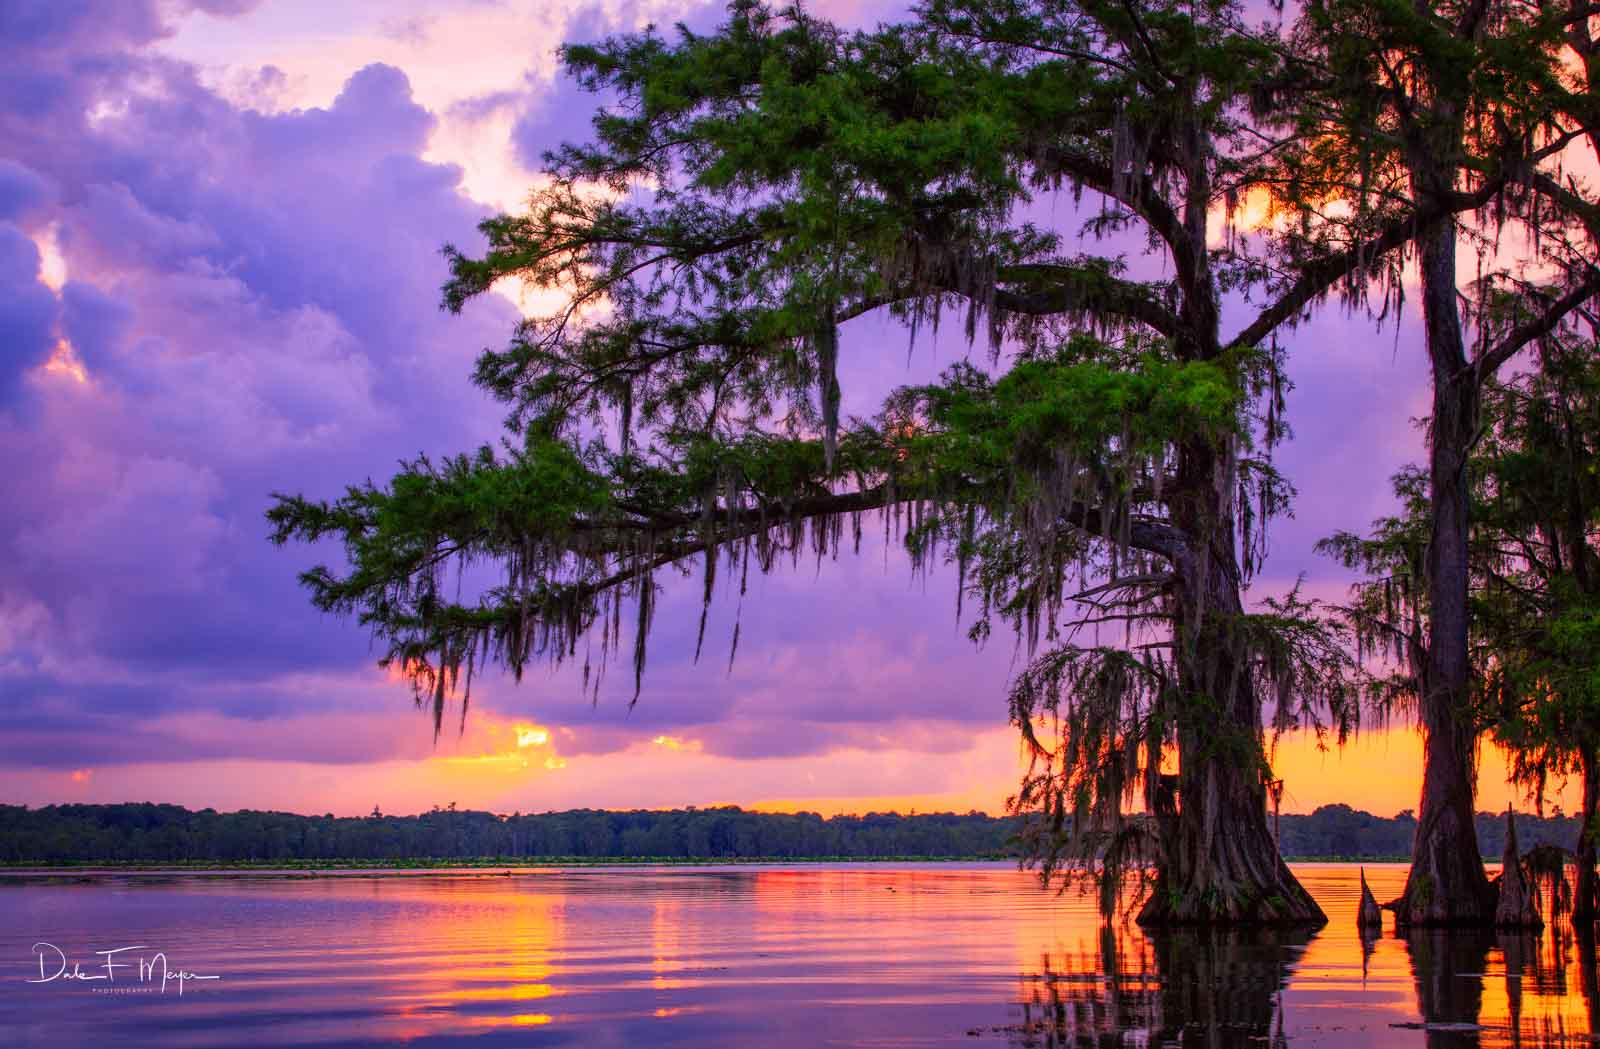 Atchafalaya River Basin Swamp, Southern Places Gallery, Sunset, photo